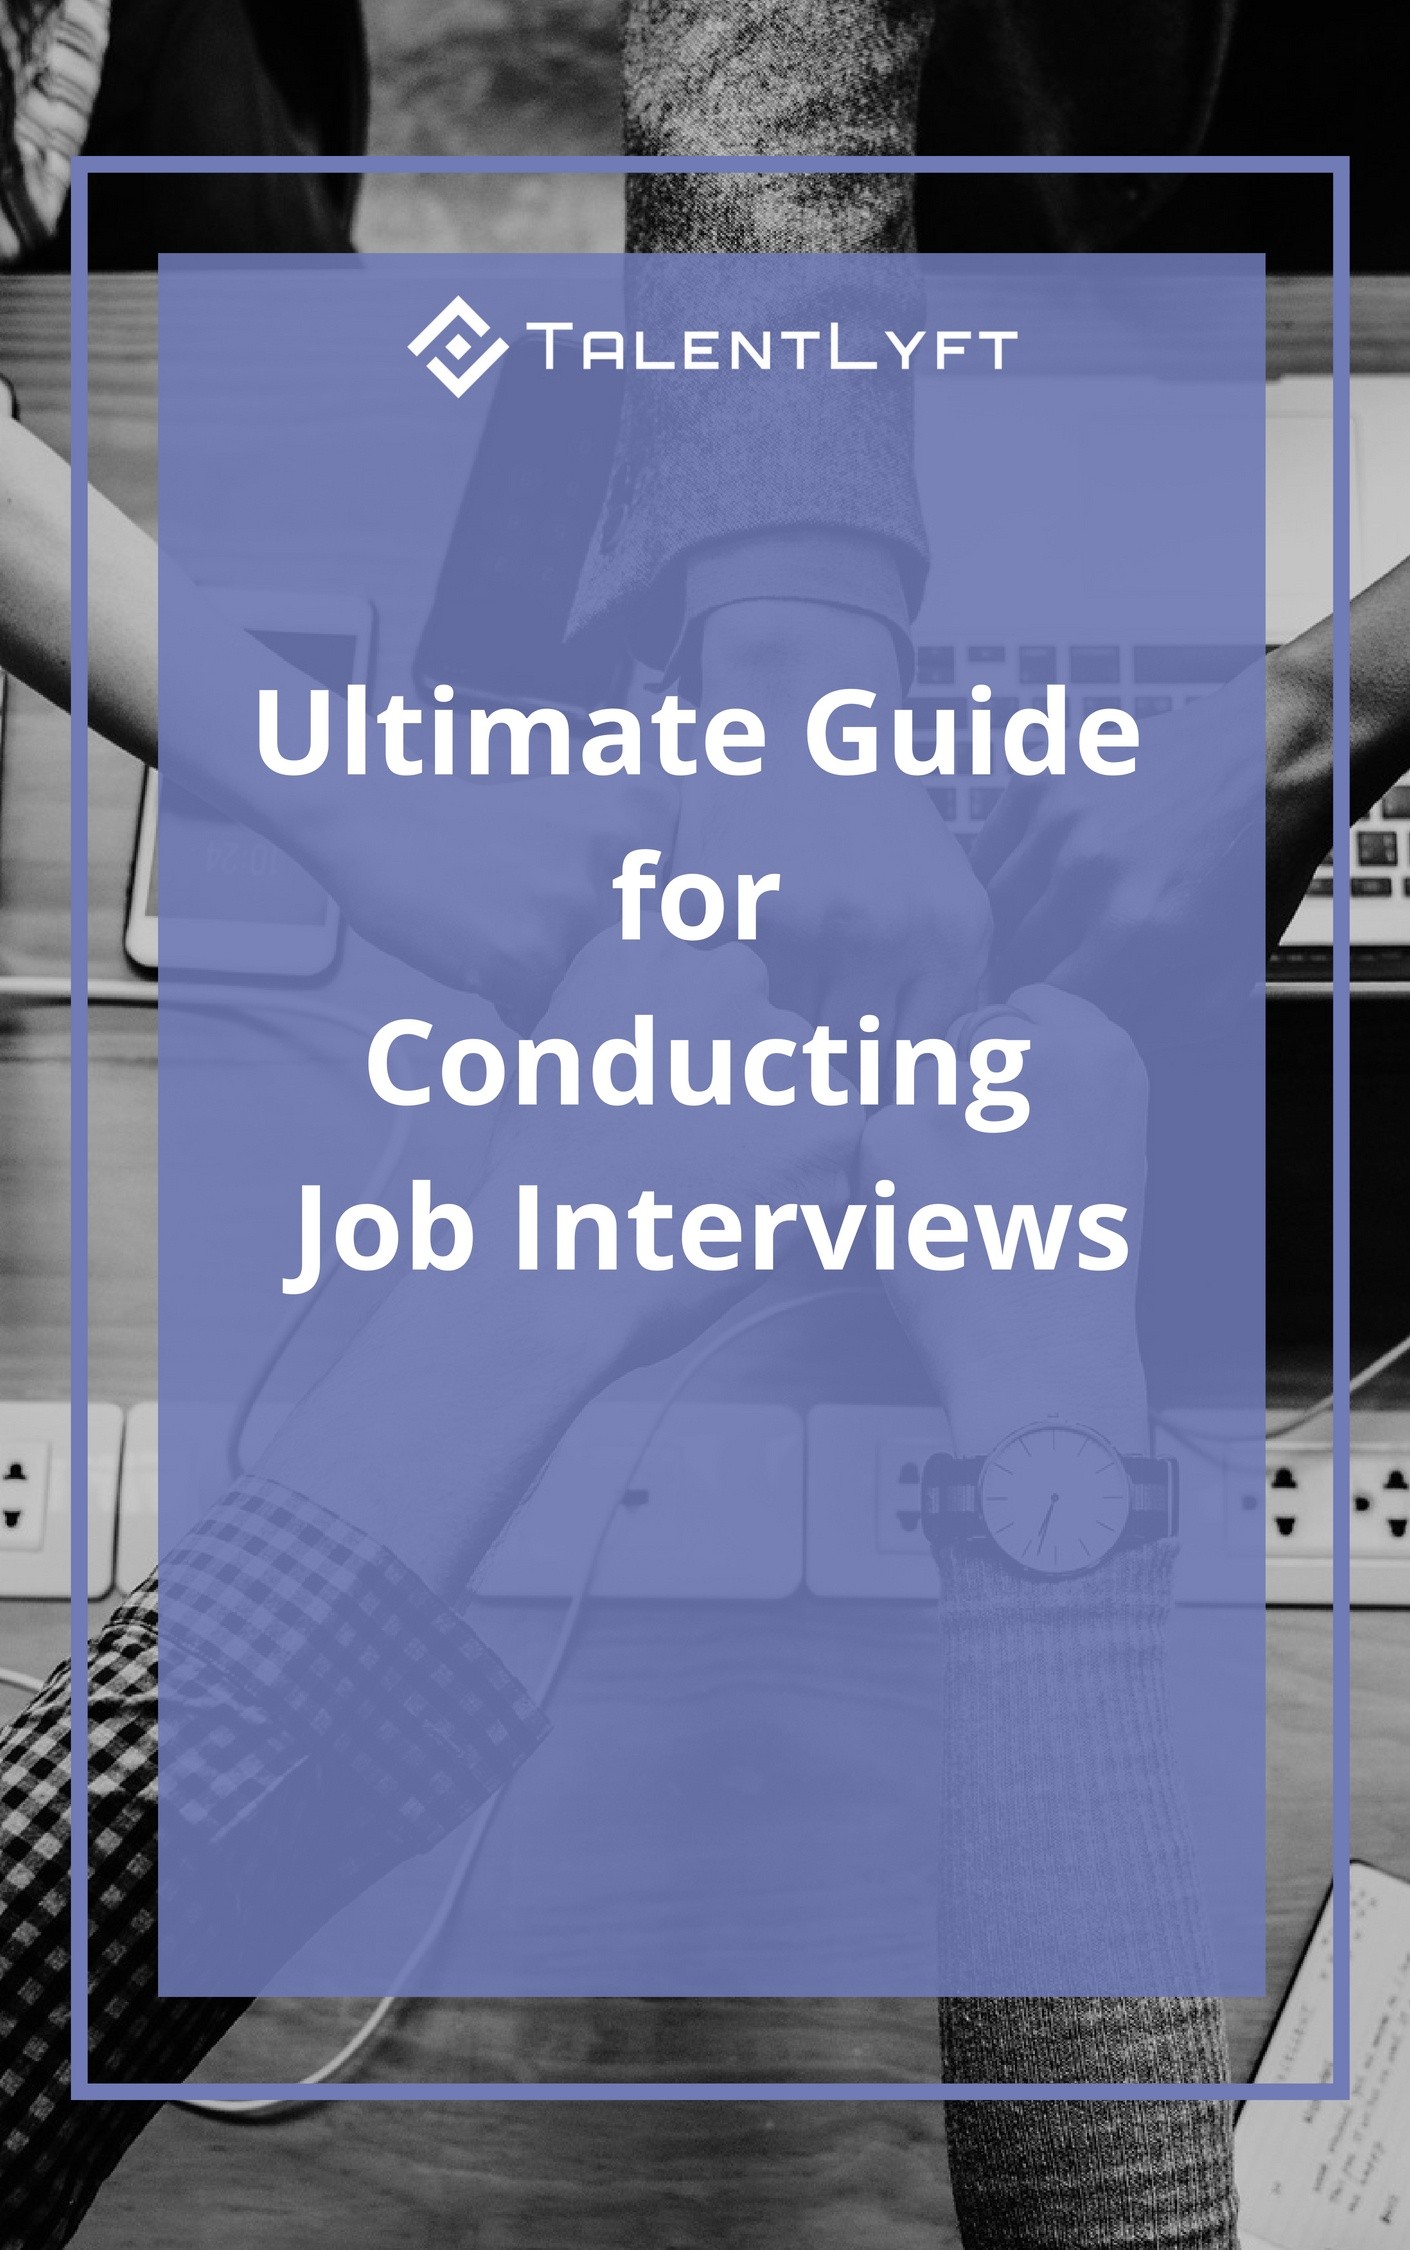 Ultimate Guide for Conducting Job Interviews.jpg